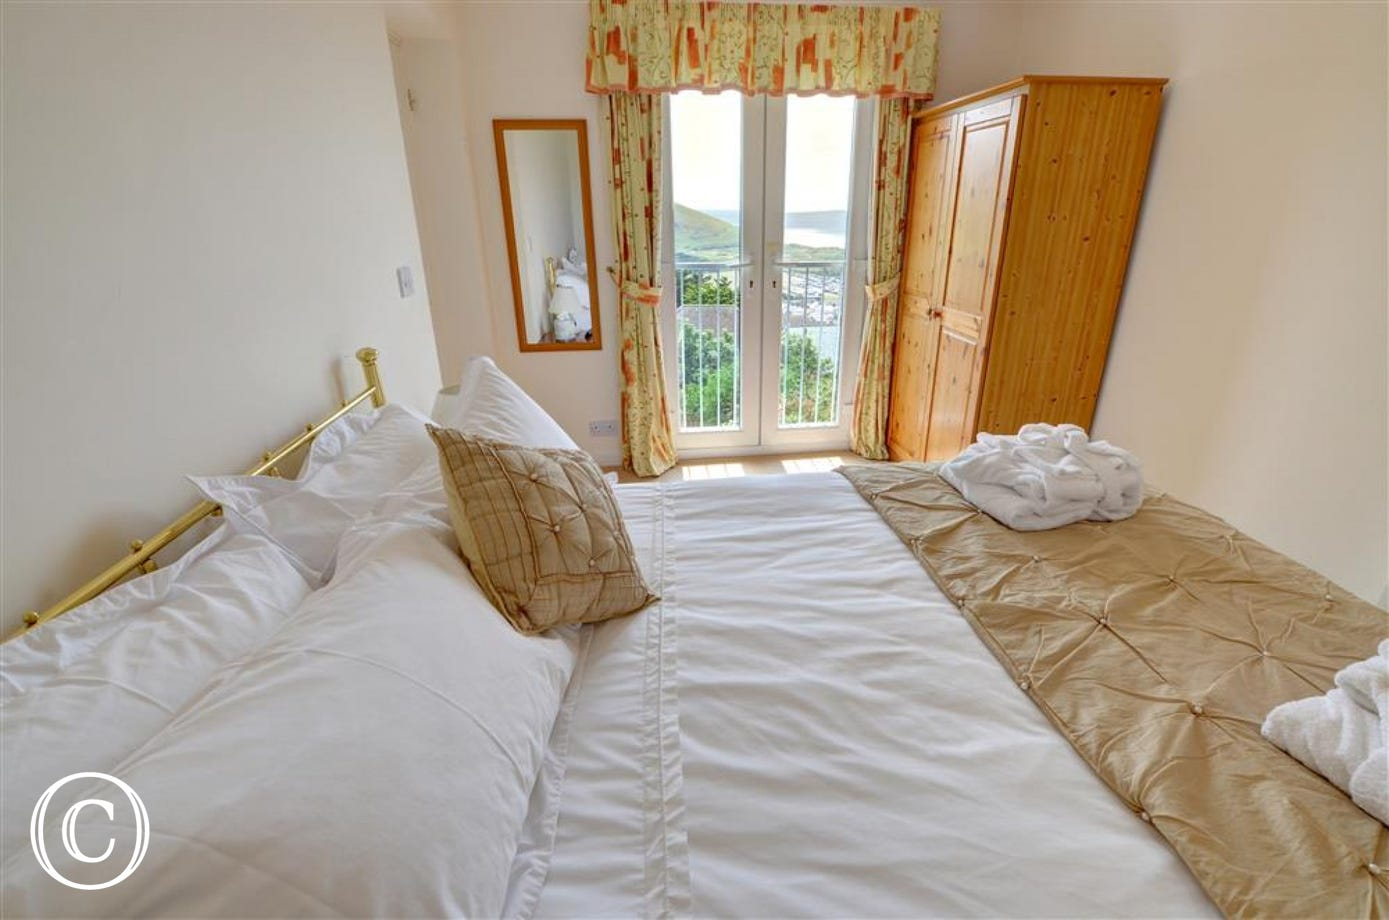 Bedroom with kingsize bed and 'Romeo & Juliette' sytle balcony with fabulous views.